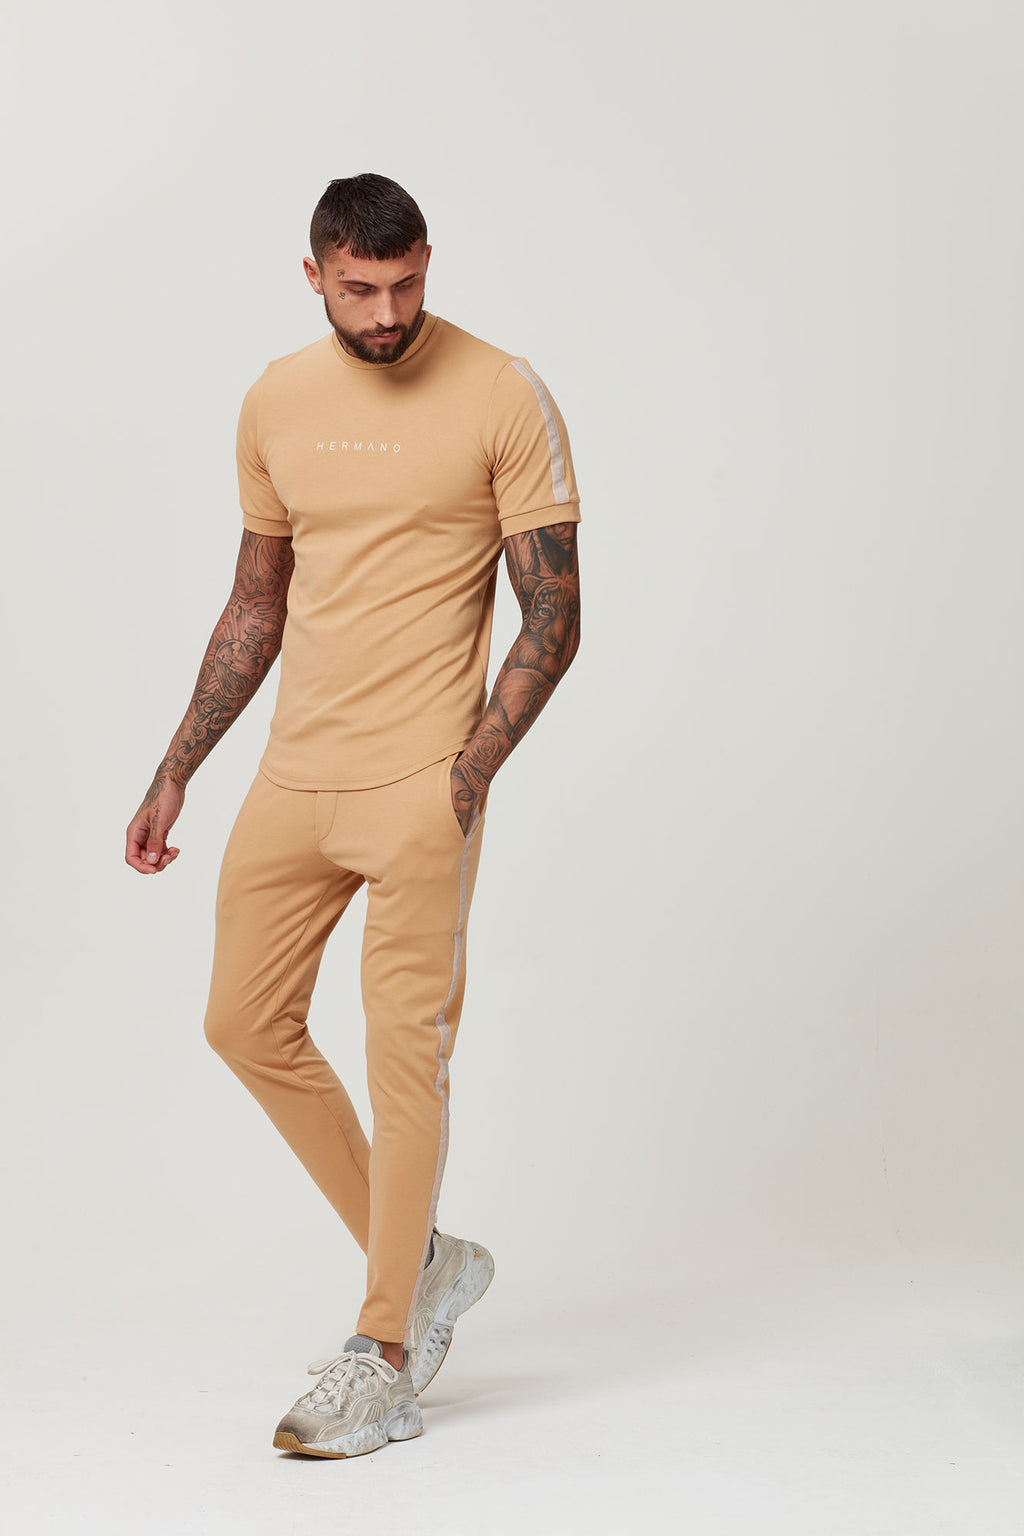 HERMANO TAPED TSHIRT CAMEL